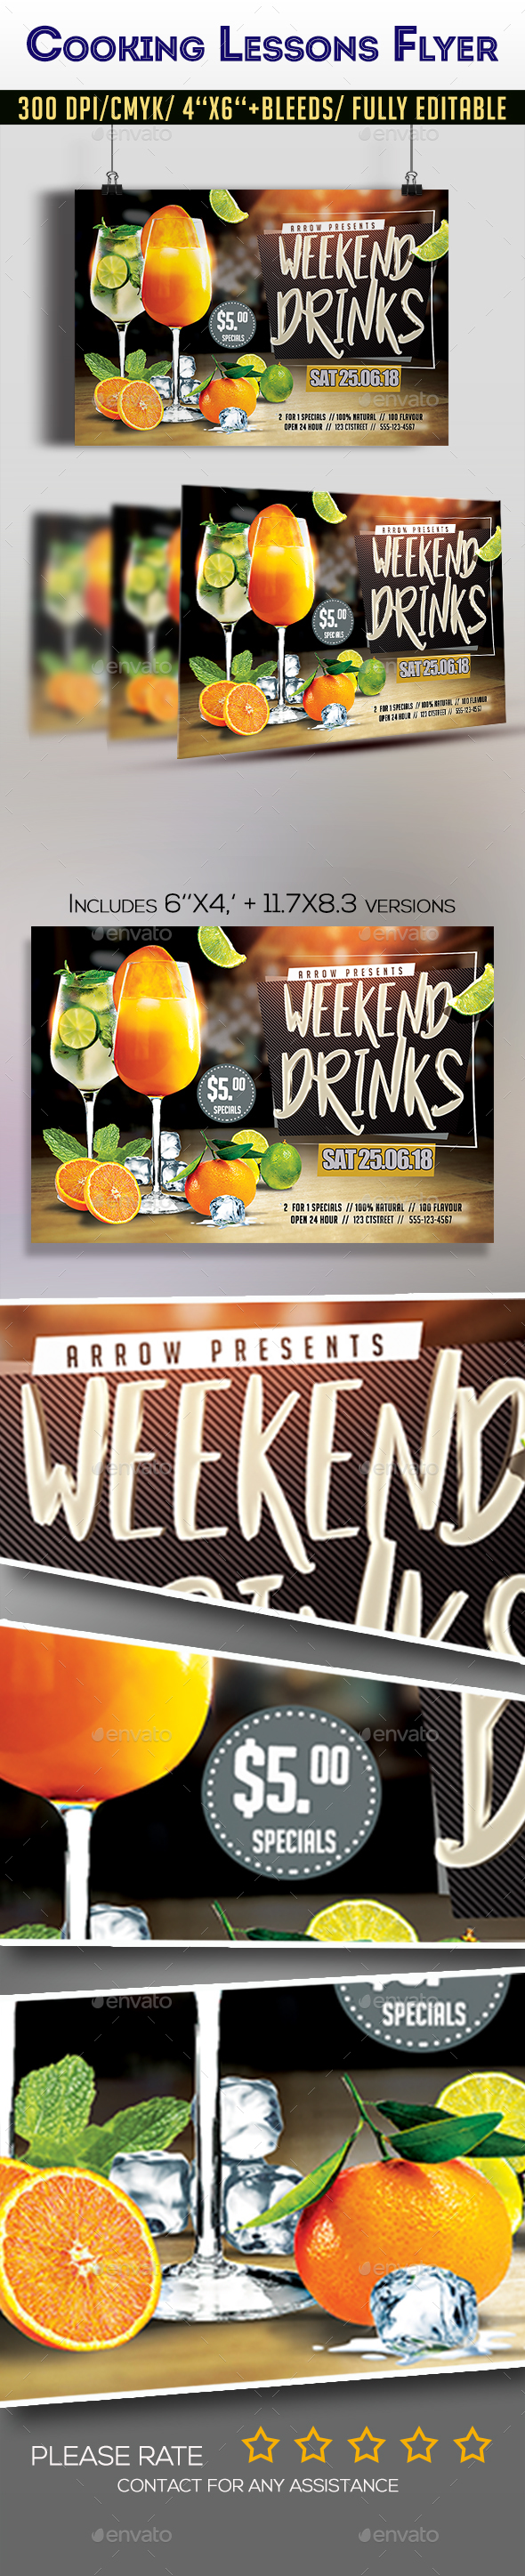 Weekend Drinks Party Flyer - Clubs & Parties Events